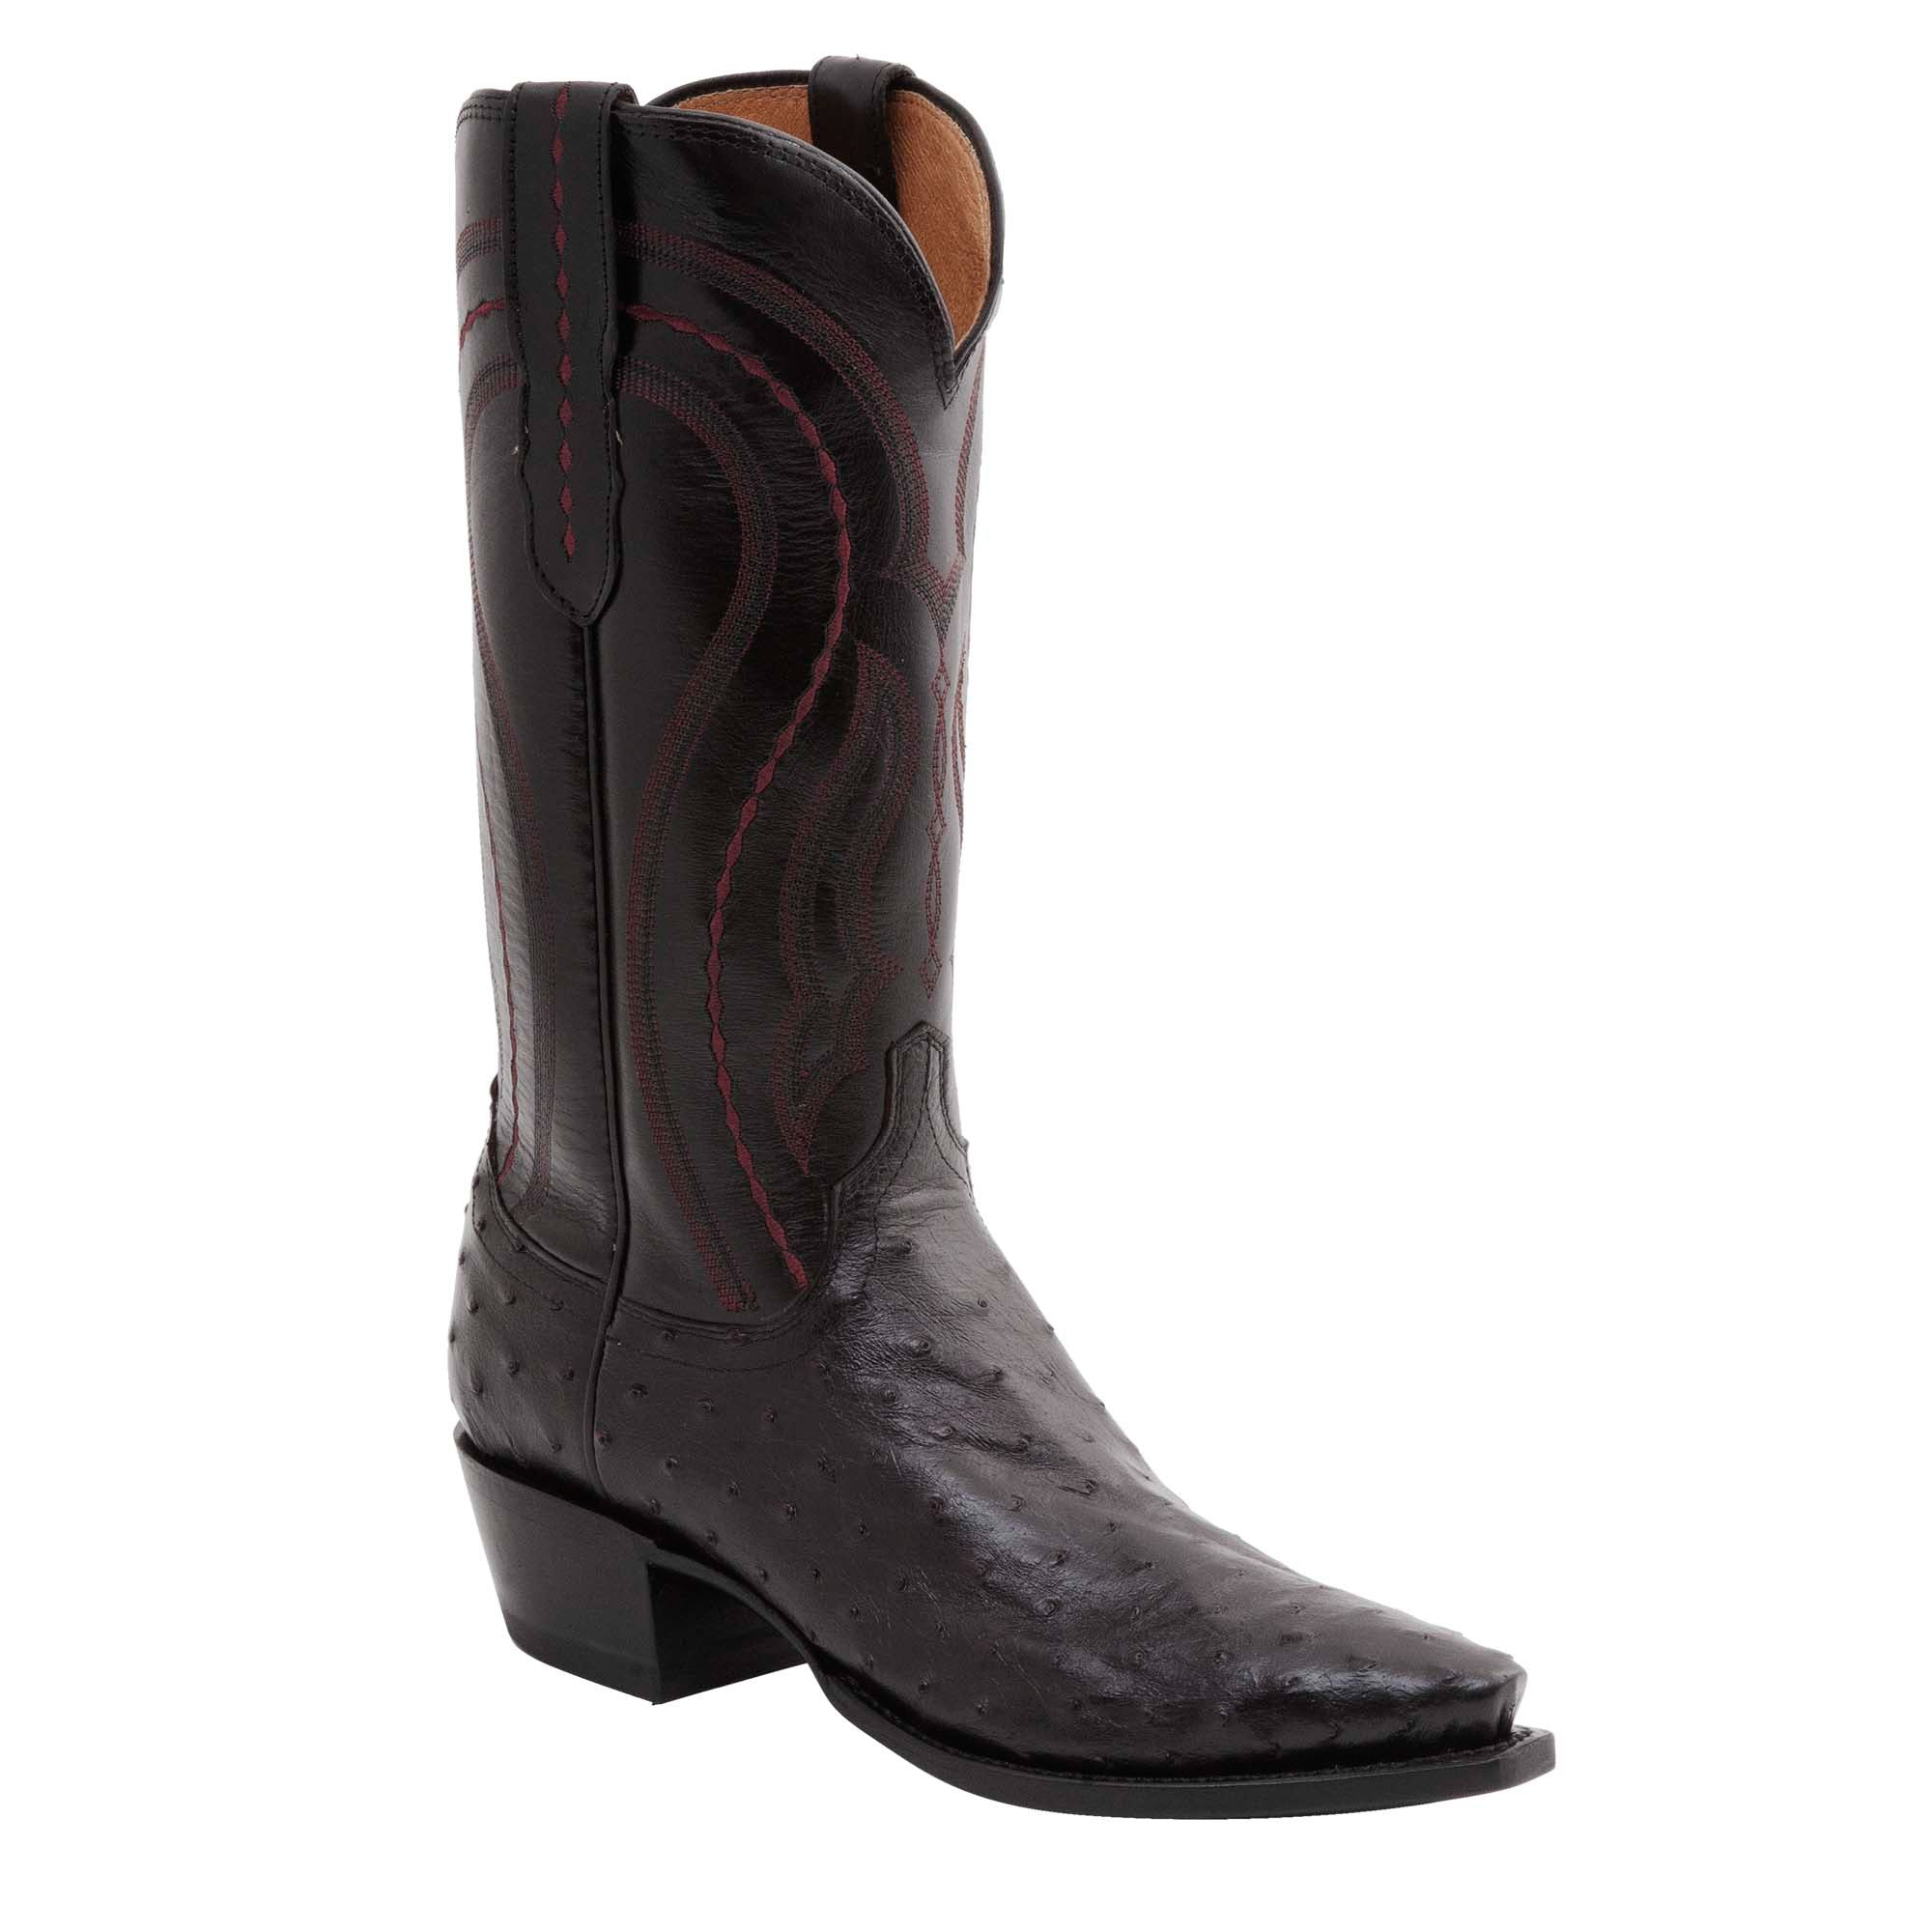 fd3d65eb850 Lucchese Mens Cowboy Boots Black Cherry Full Quill Ostrich